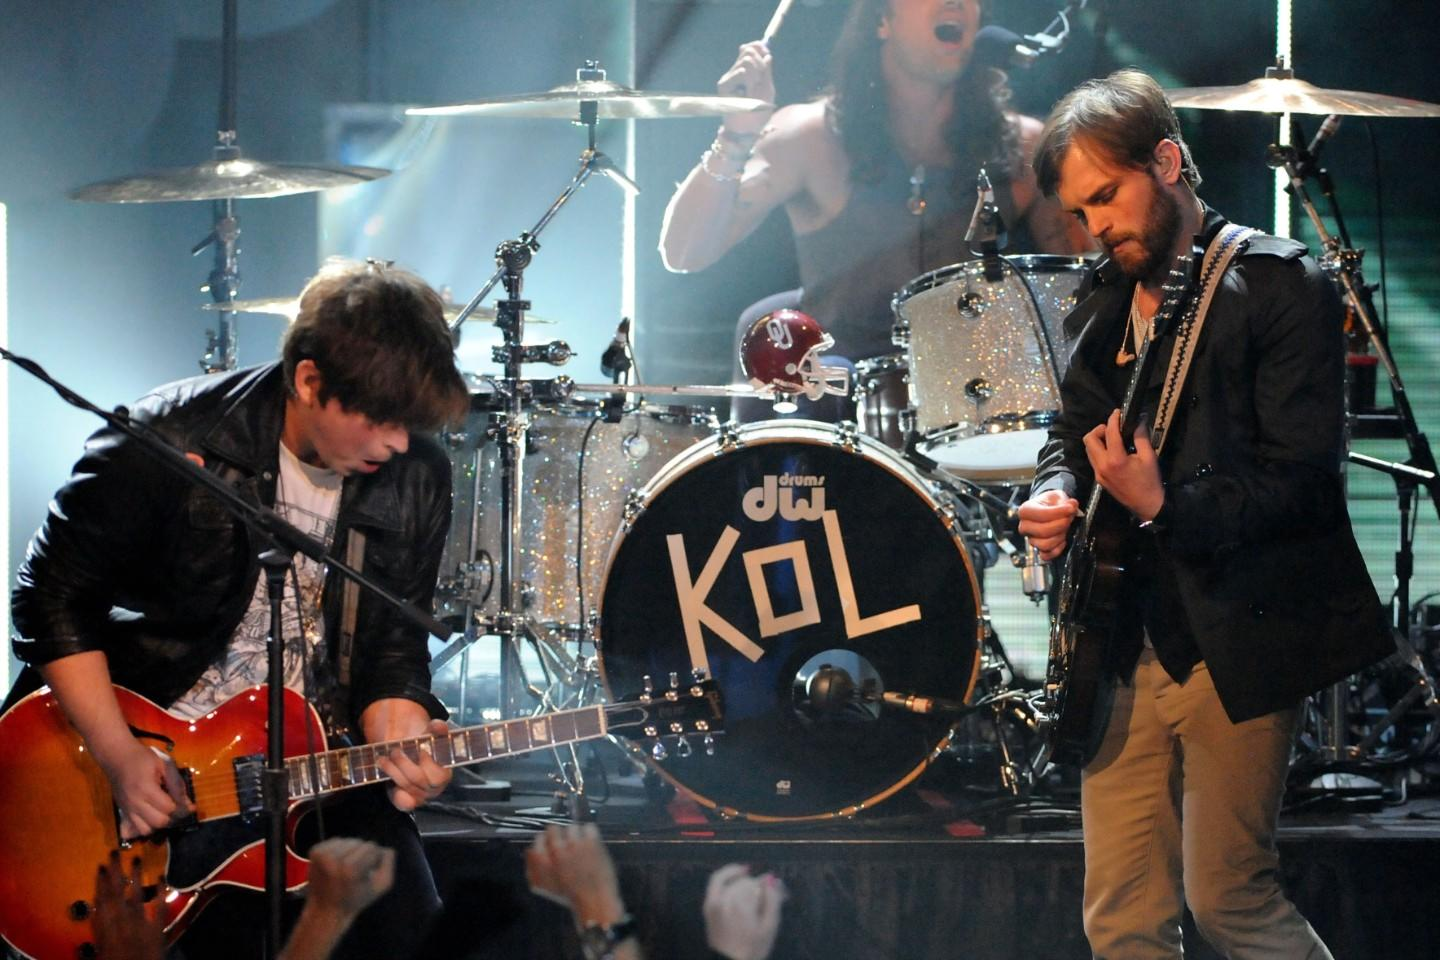 Kings of Leon Tickets | Kings of Leon Tour 2019 and ...